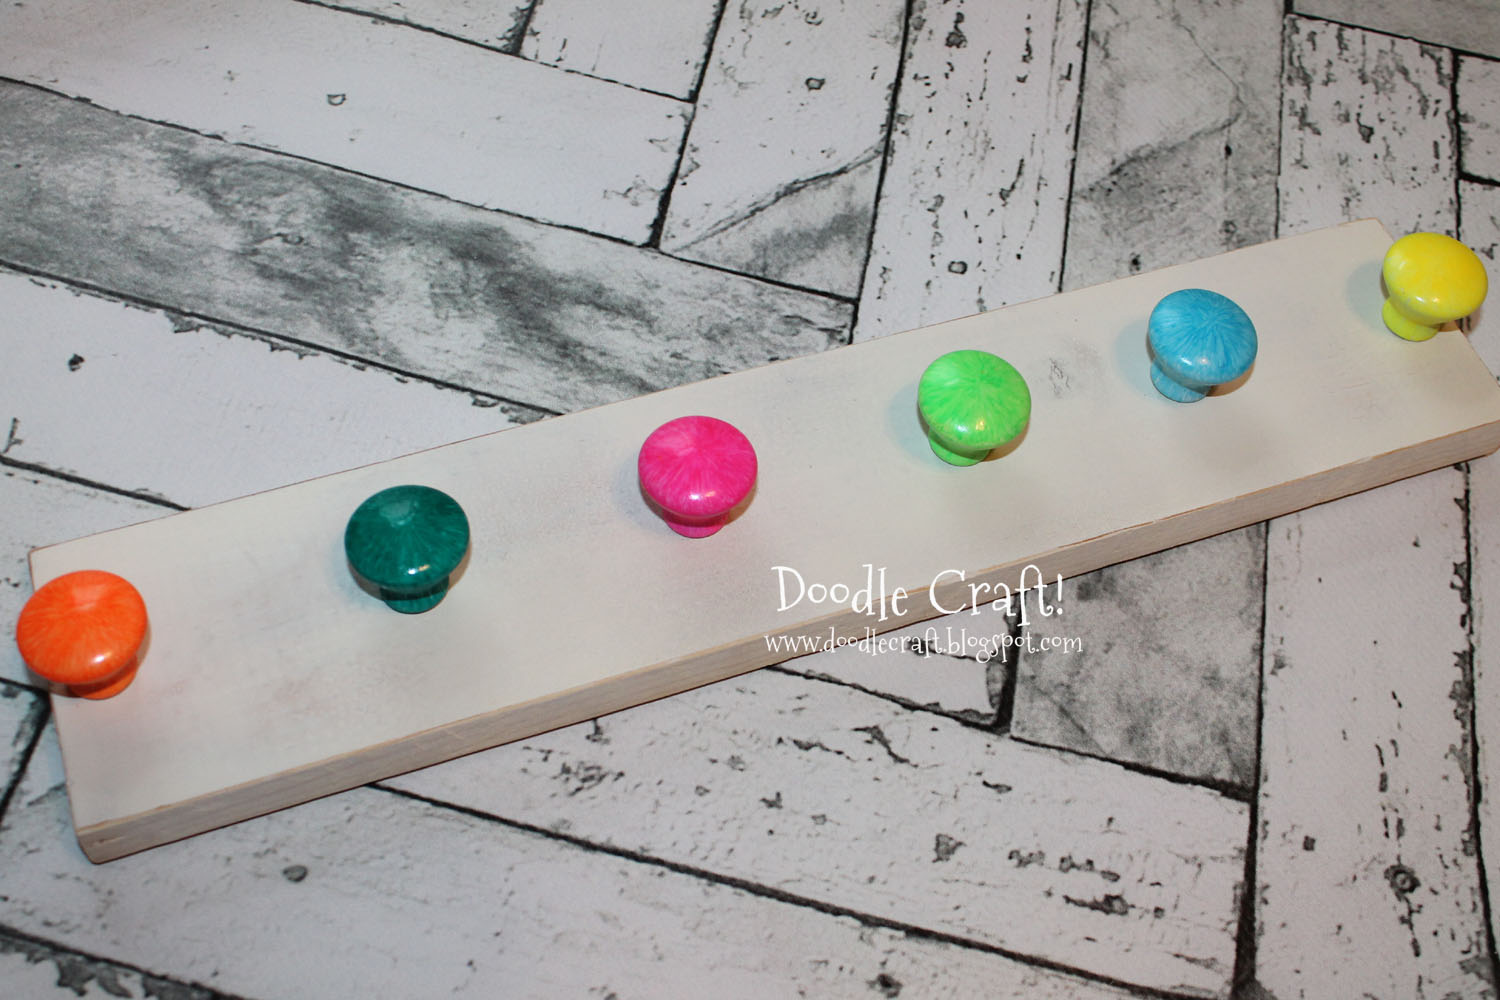 Doodlecraft Upcycled Knob Hanging Coat Rack Or Jewelry